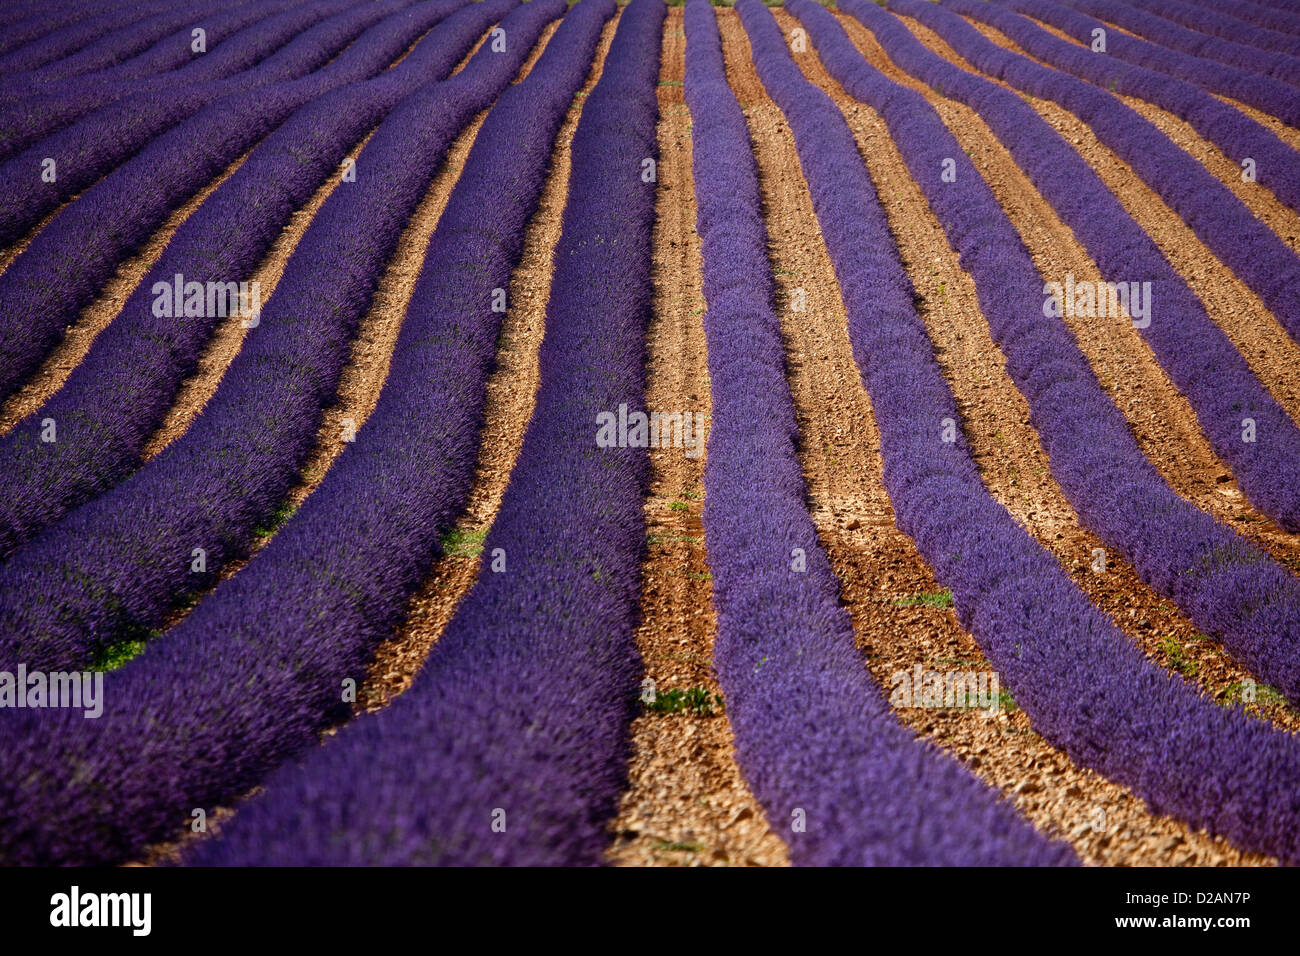 Rows of purple flowers in field - Stock Image